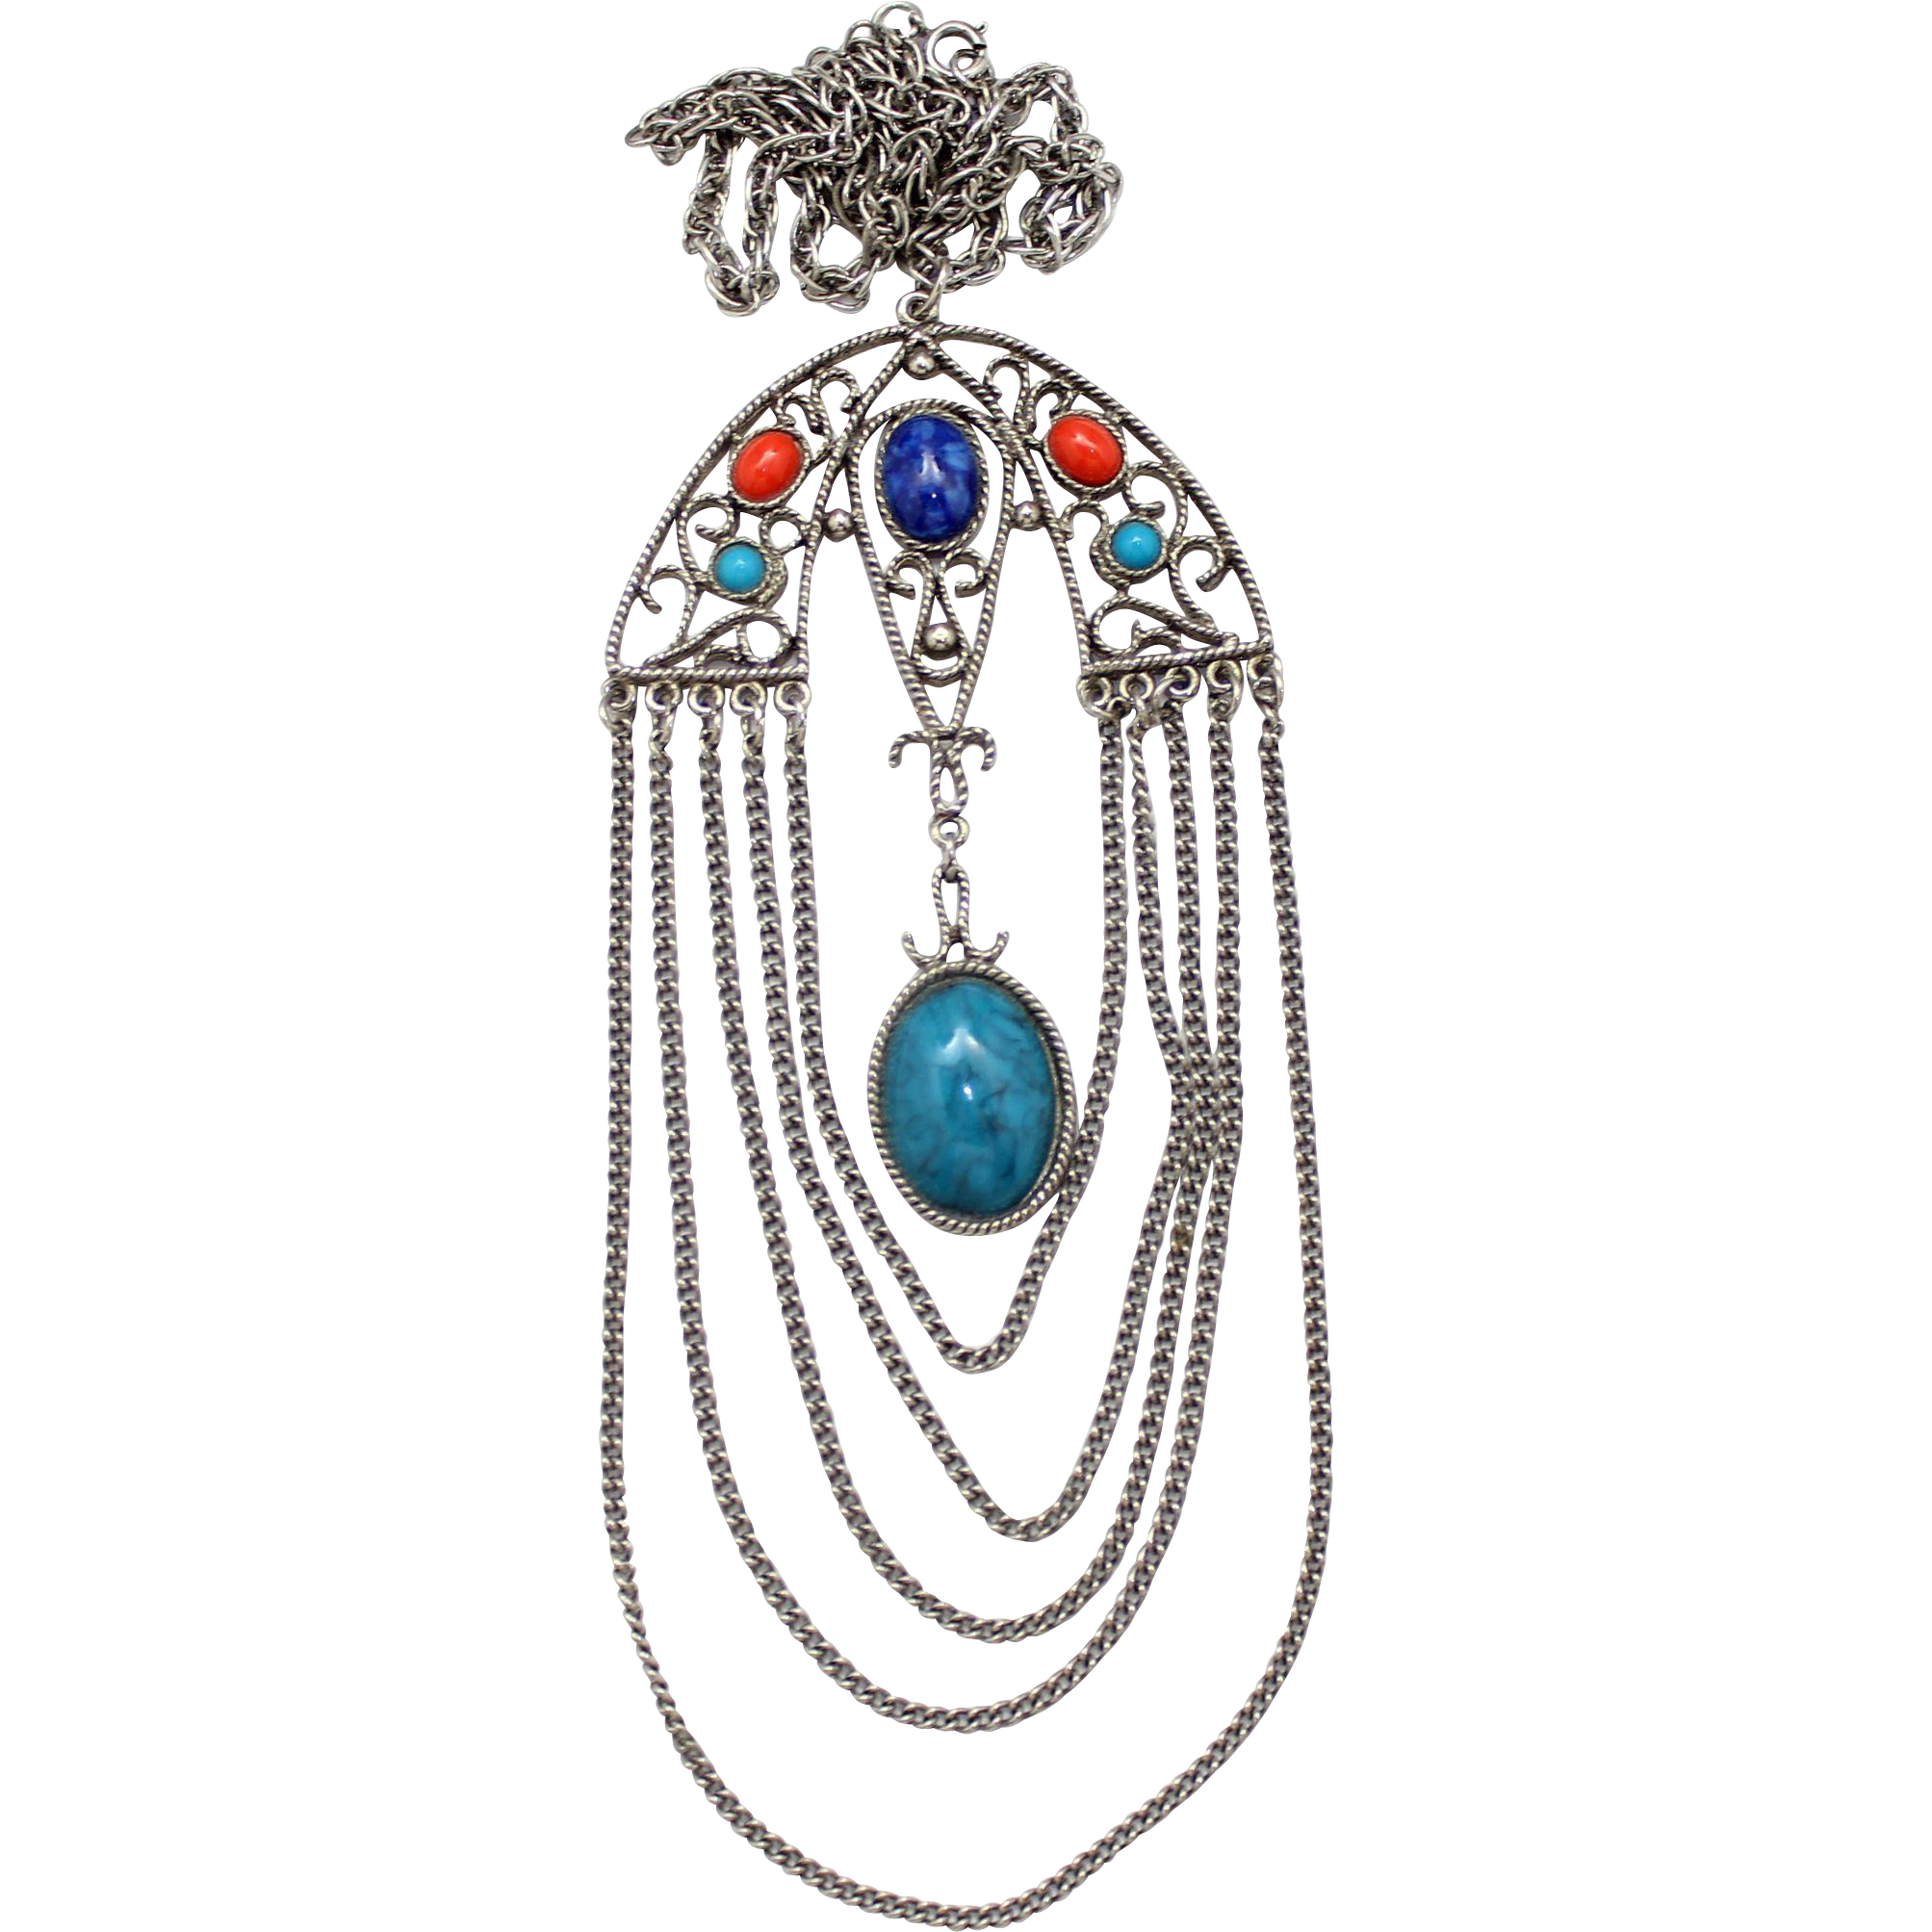 Vintage Juliana Book Piece Blue, Turquoise Red Cabochon Rhinestone Asian Style Pendant Necklace